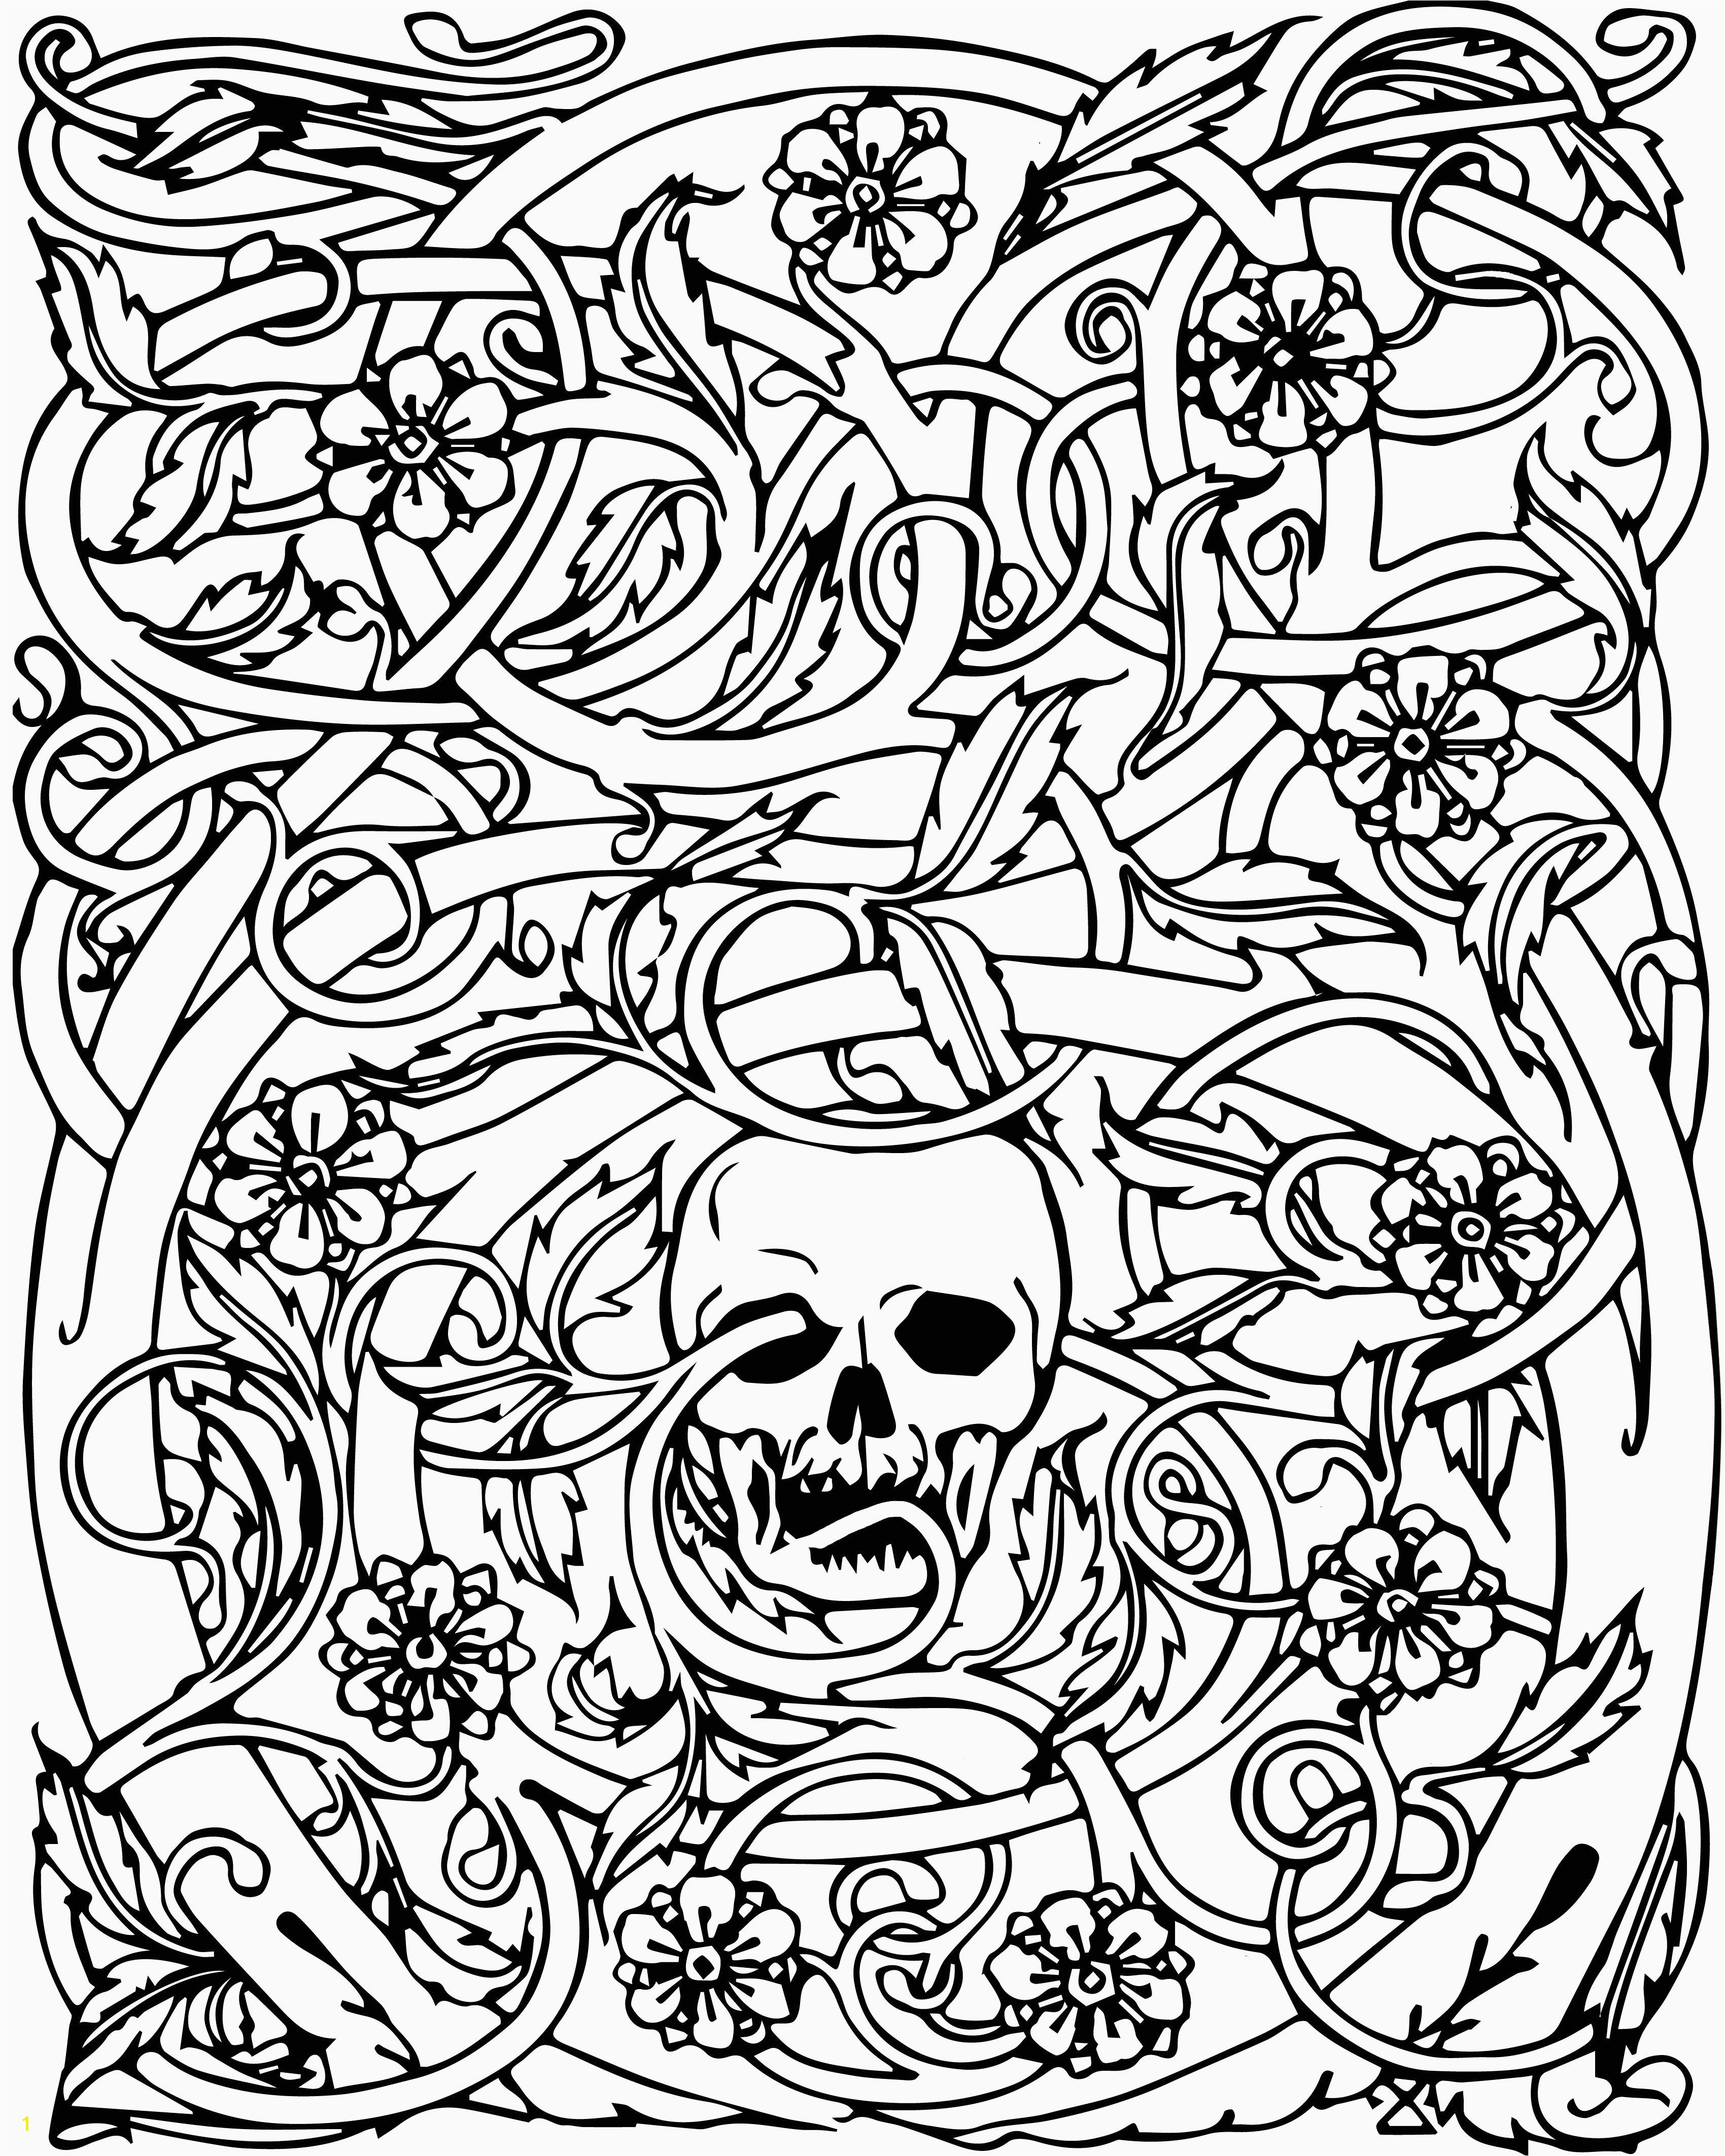 Olmec Coloring Pages 15 Awesome Olmec Coloring Pages S